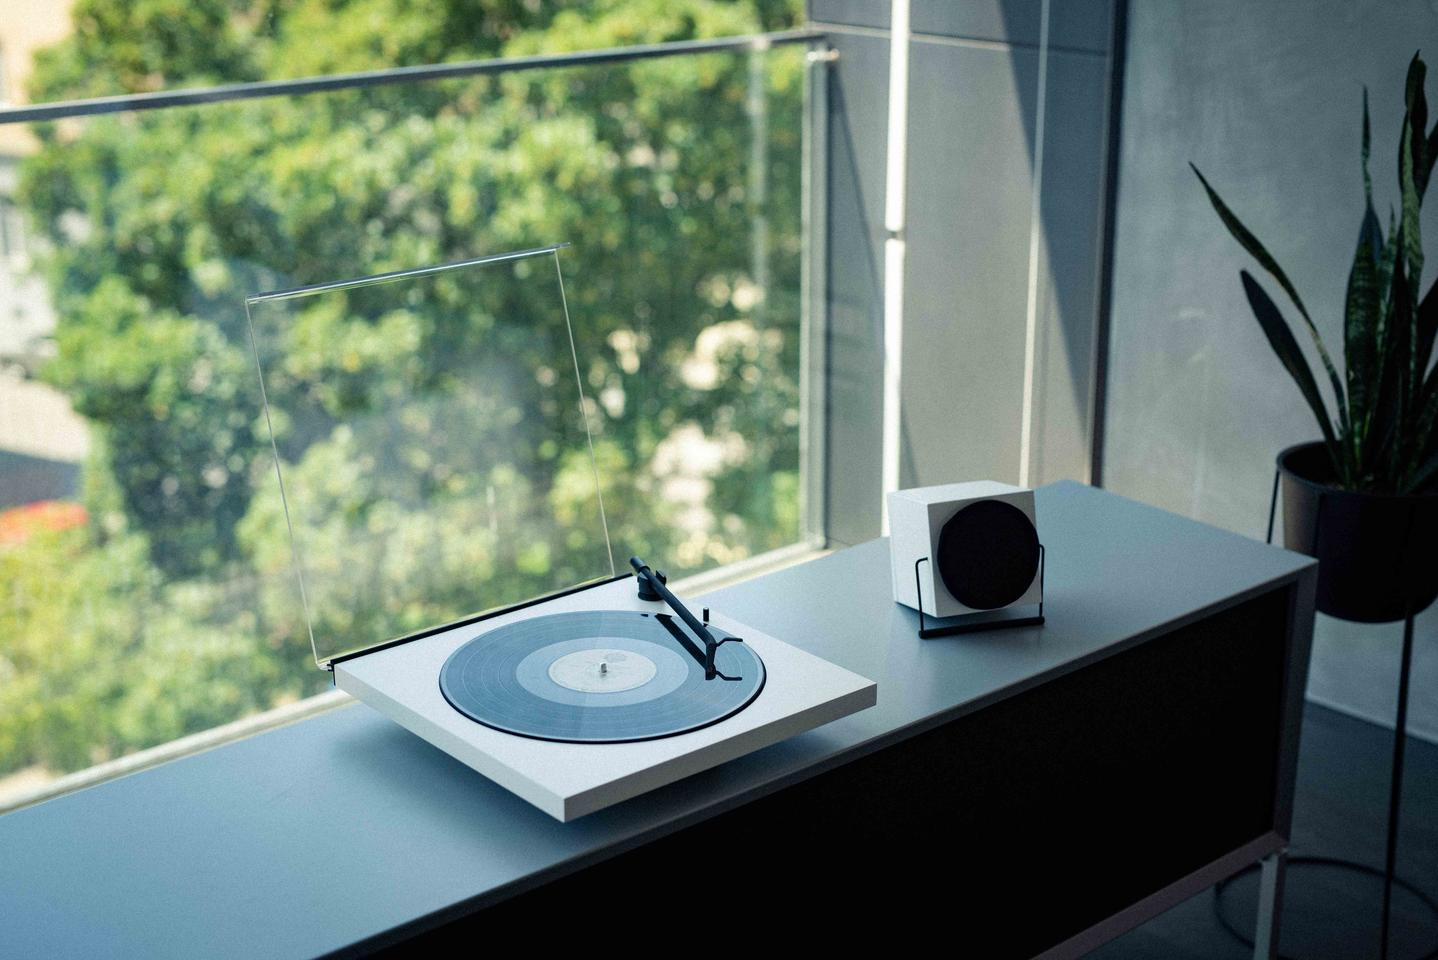 Users can opt to pair the Tone Factory turntable with a Bluetooth speaker, or cable it up to their living room hi-fi system